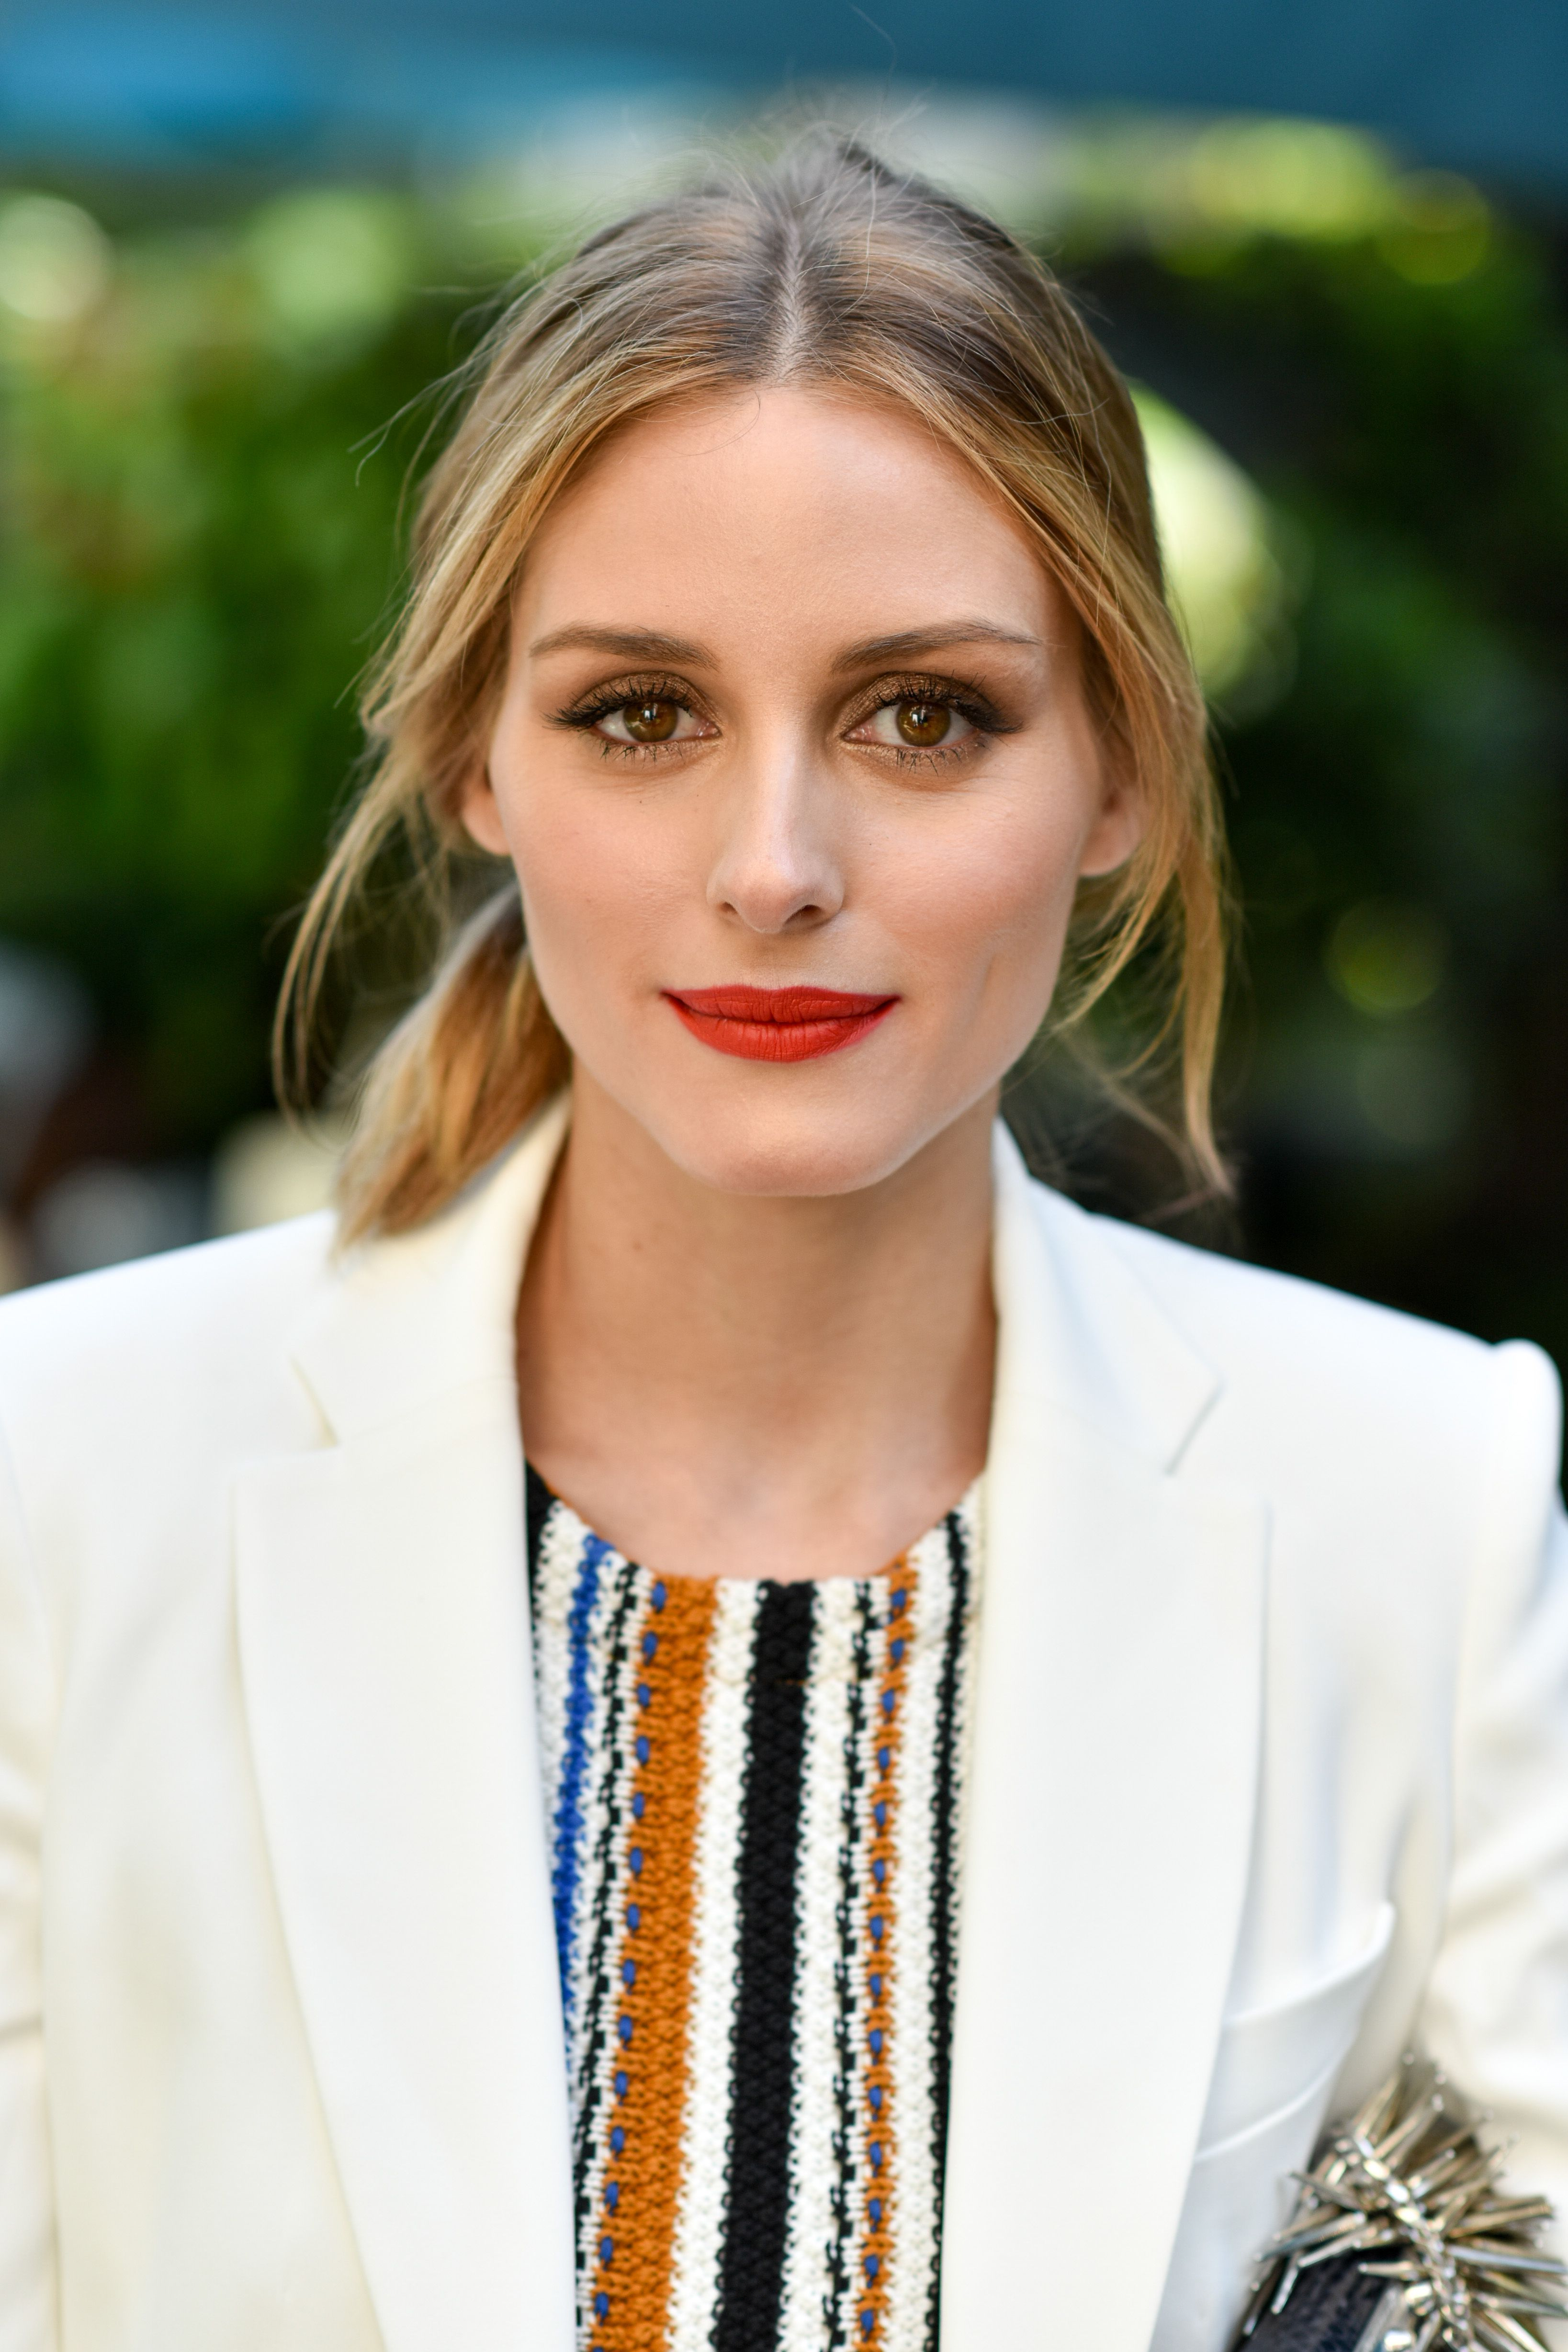 Olivia Palermo s Jimmy Choos might be the best part of this garden party  outfit 2592c7ab942